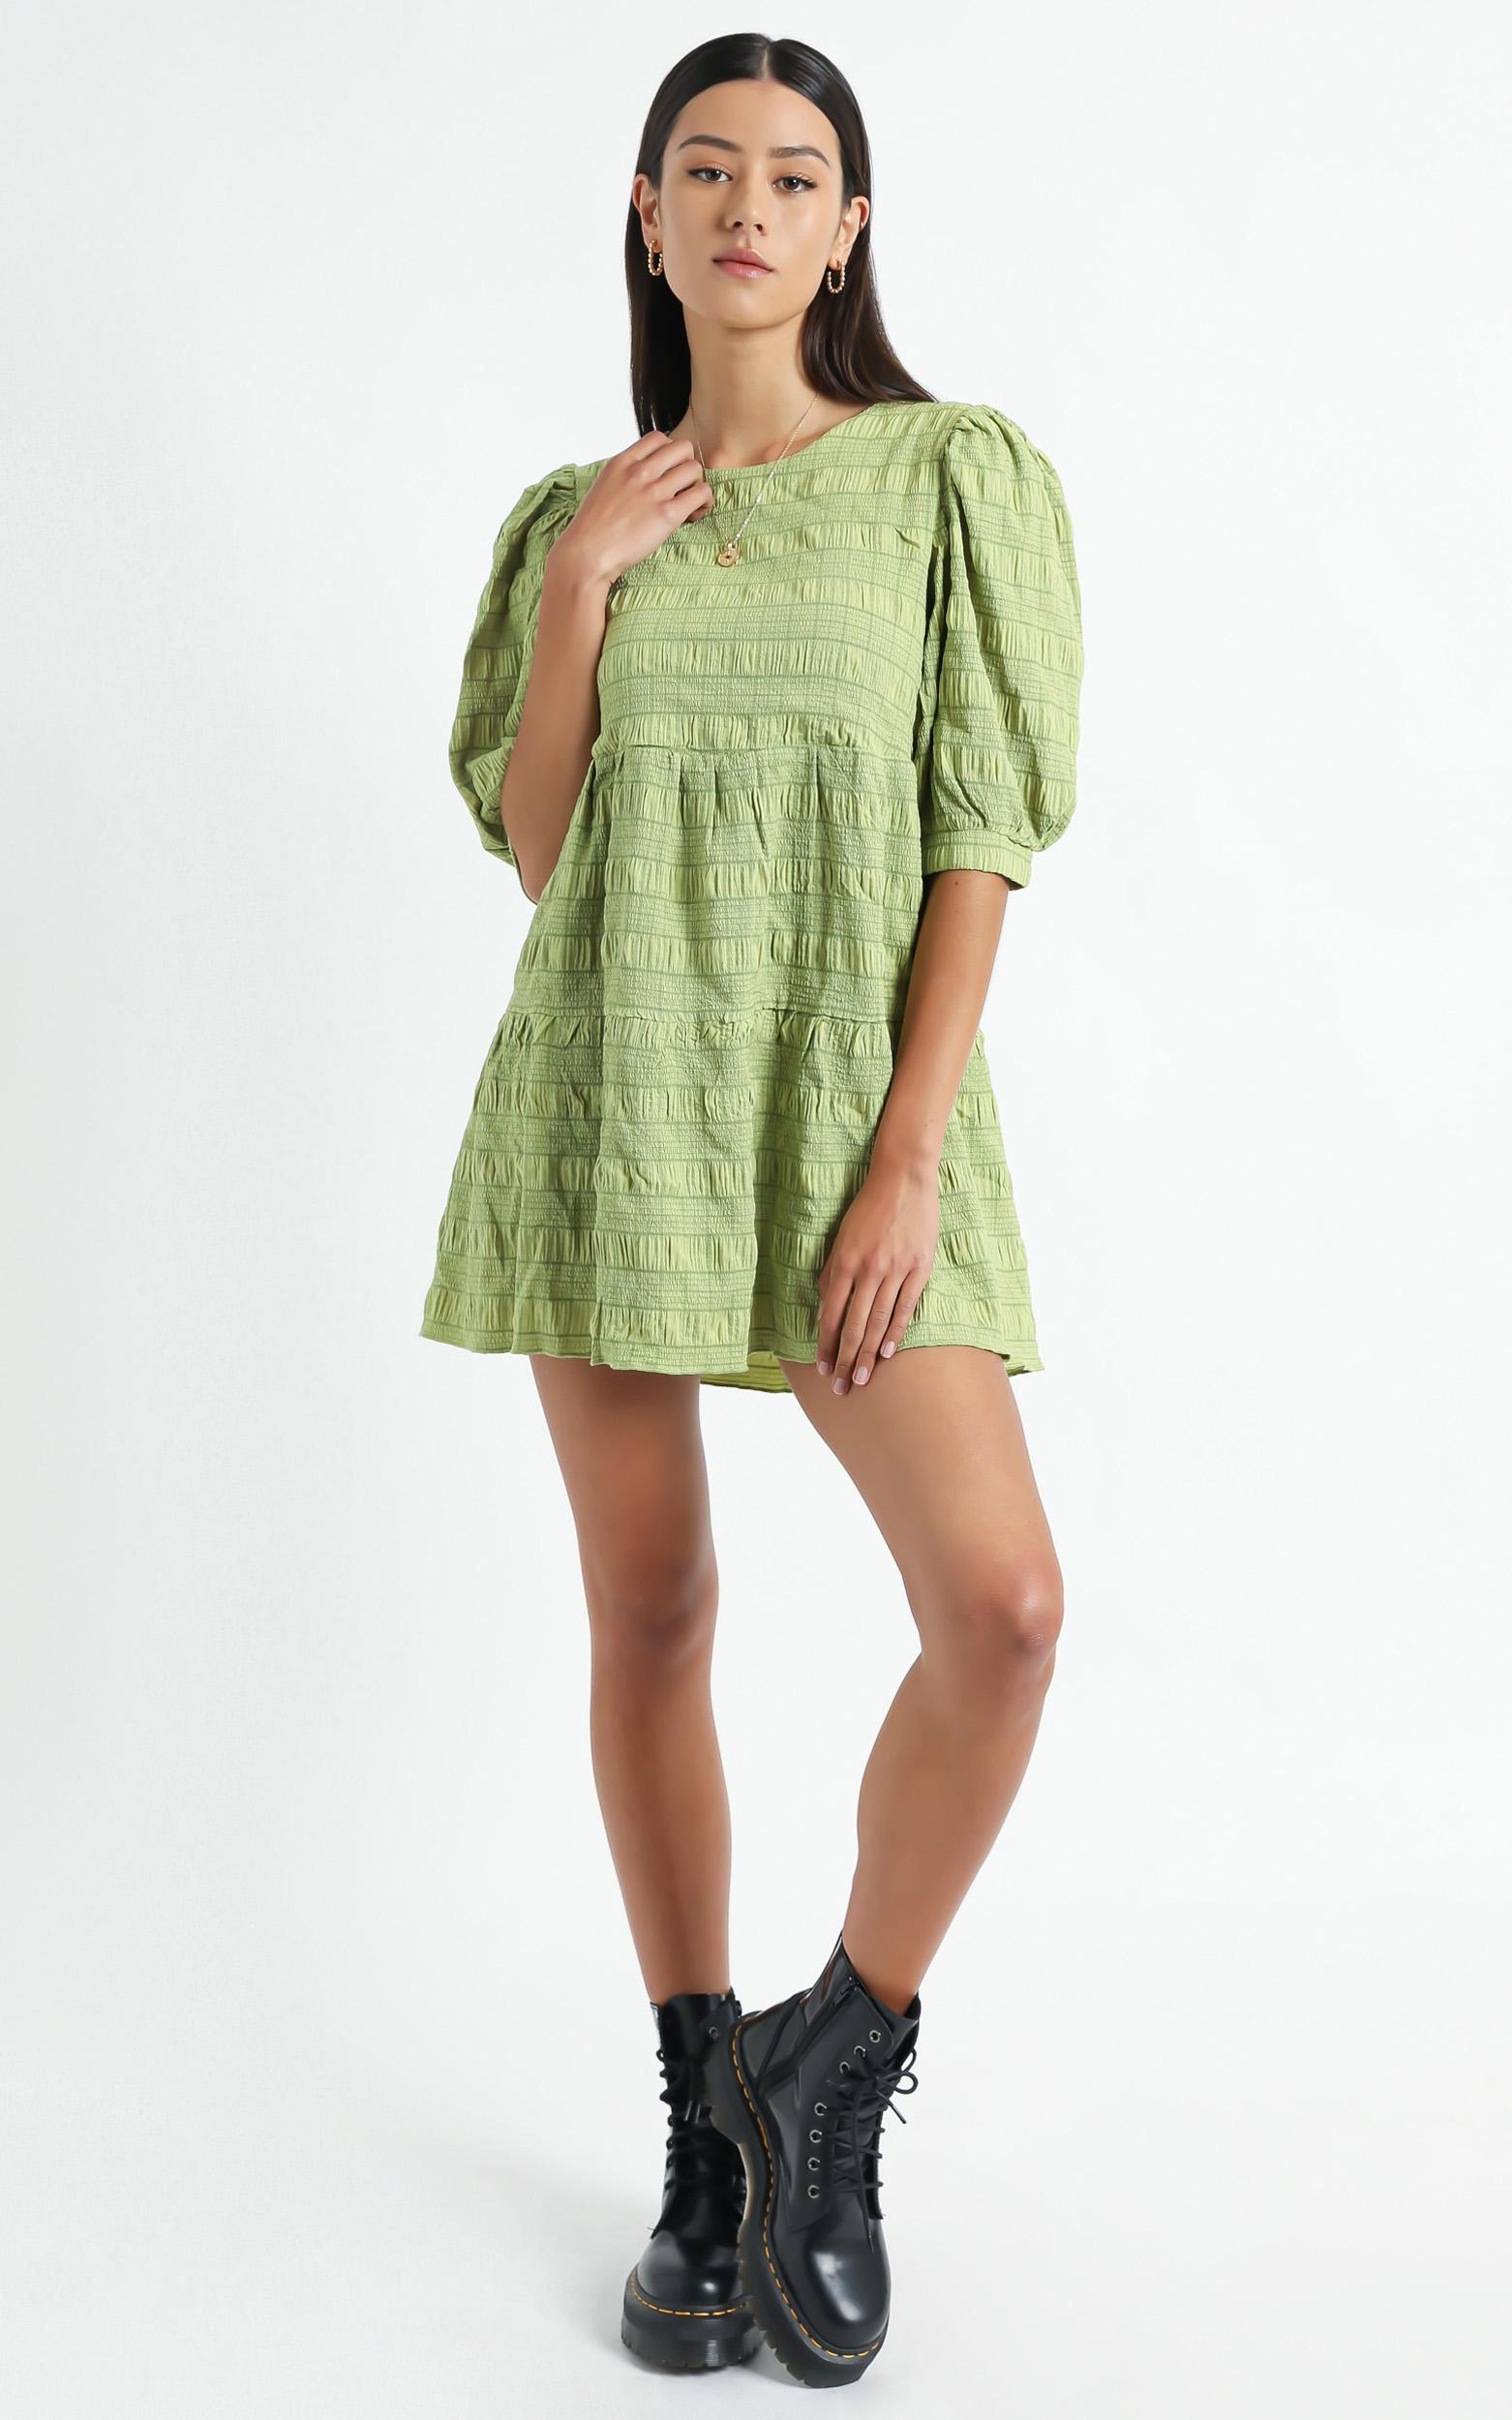 Darcia Dress in Green Check - 6 (XS), Green, hi-res image number null